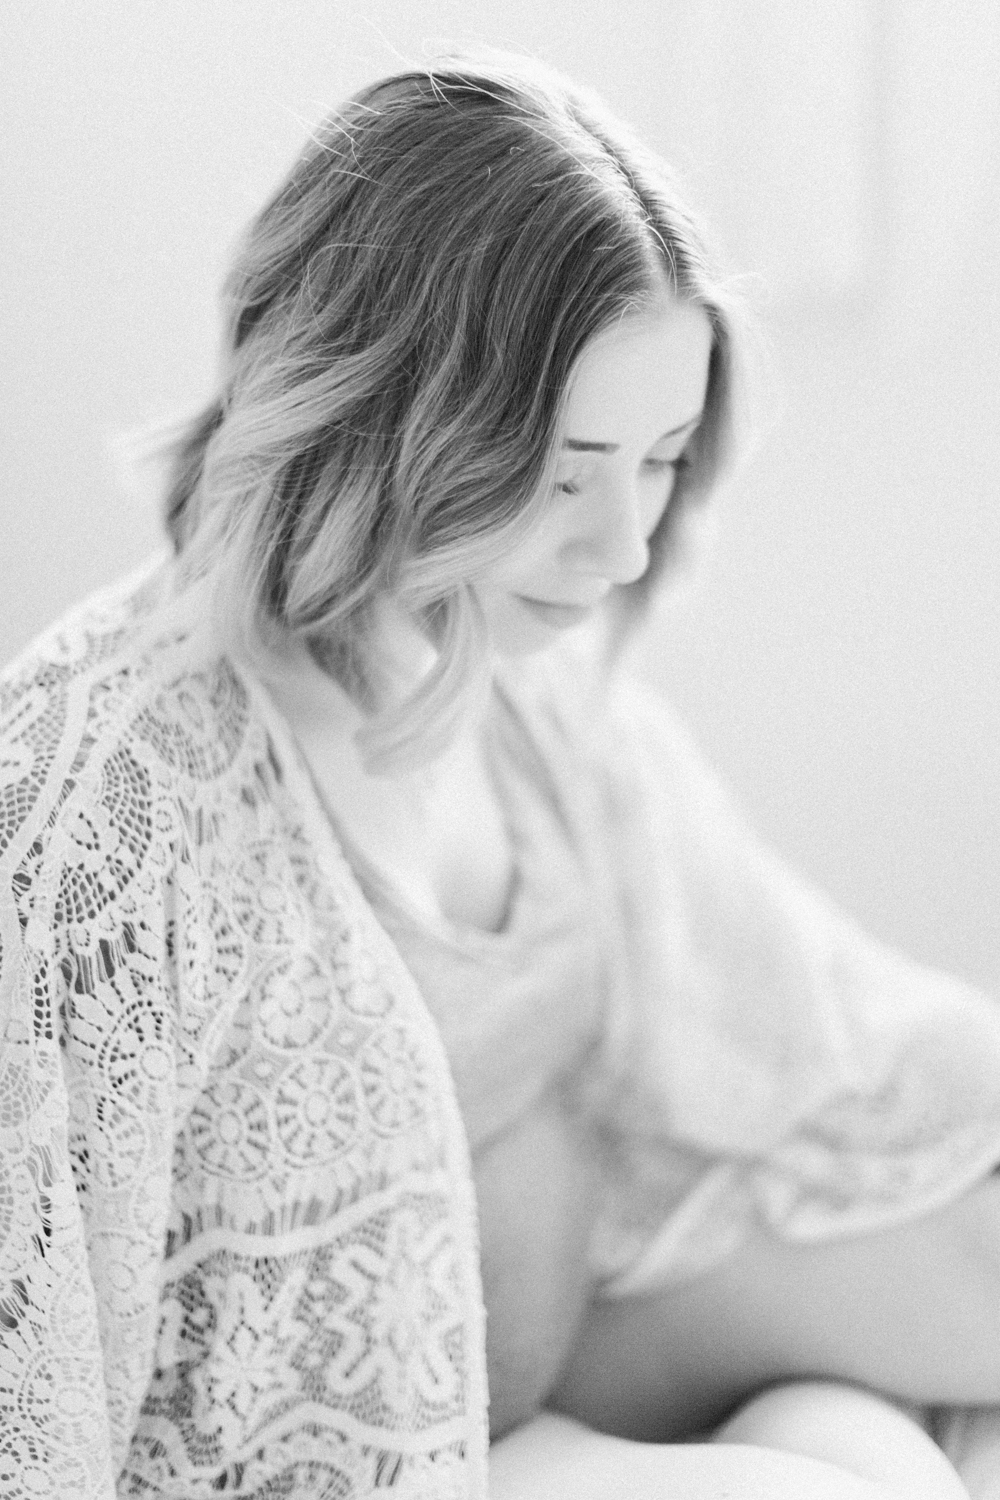 calgary-maternity-photography-photographer-14.jpg